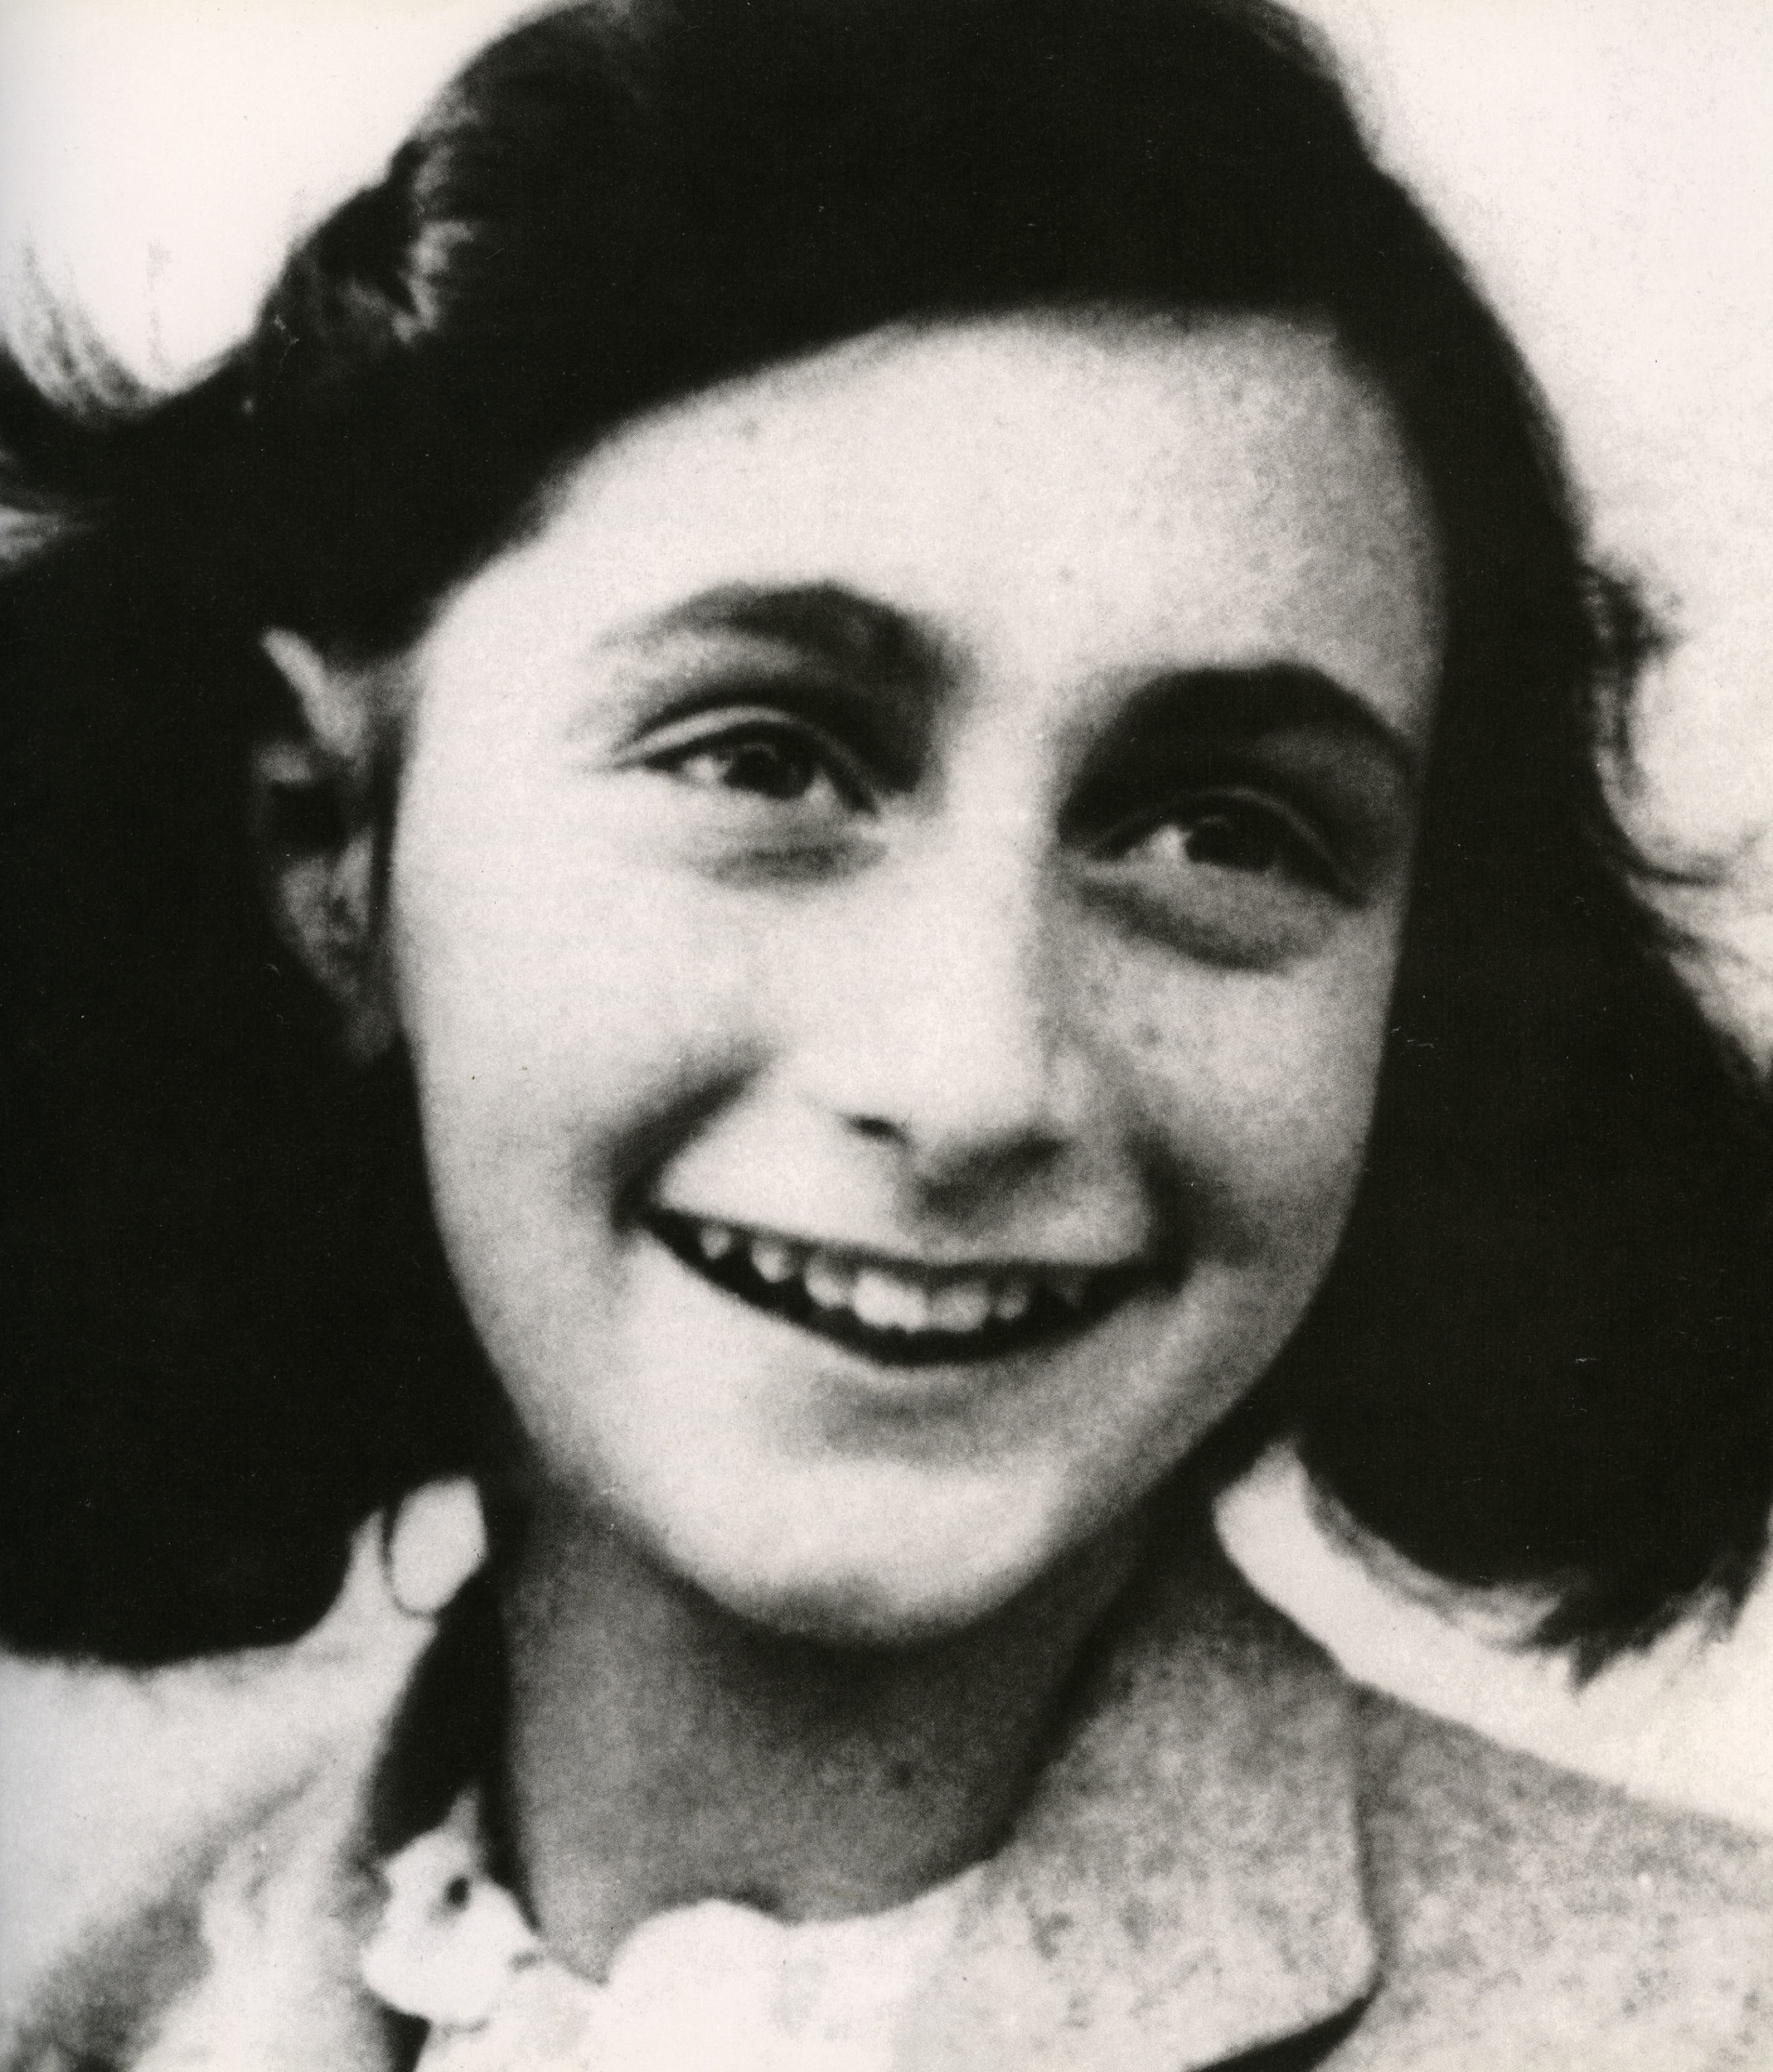 anne-frank-1929-1945-jewish-ditch-holocaust-victim-1.jpg